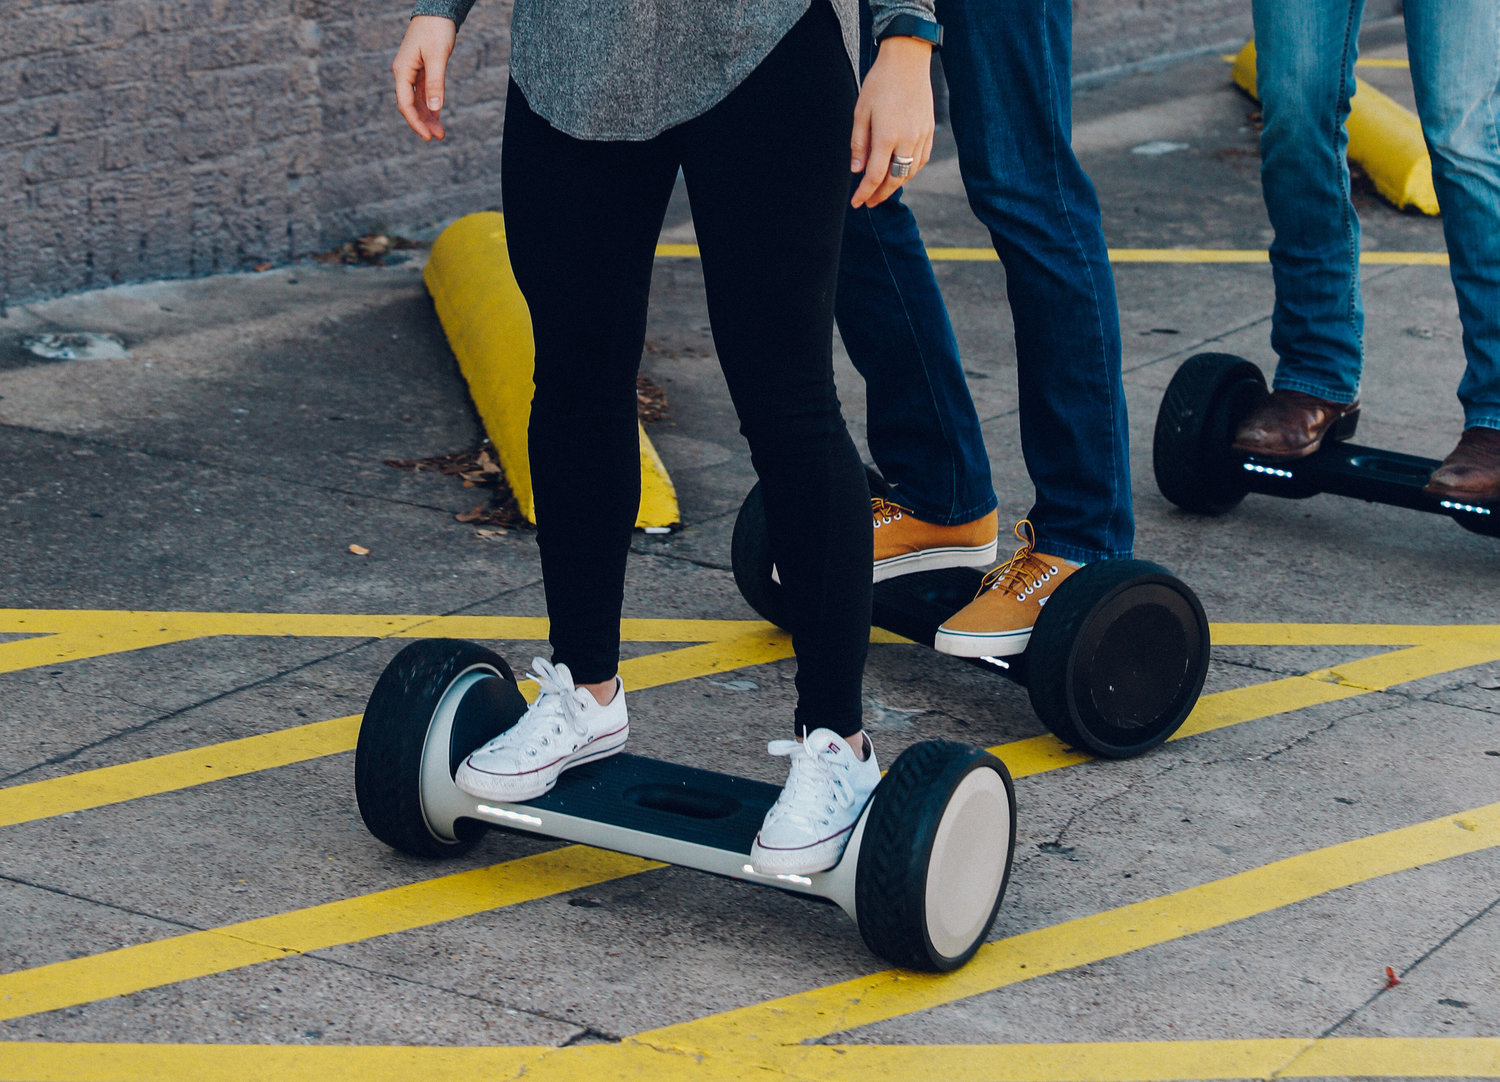 Don't call it a hoverboard!